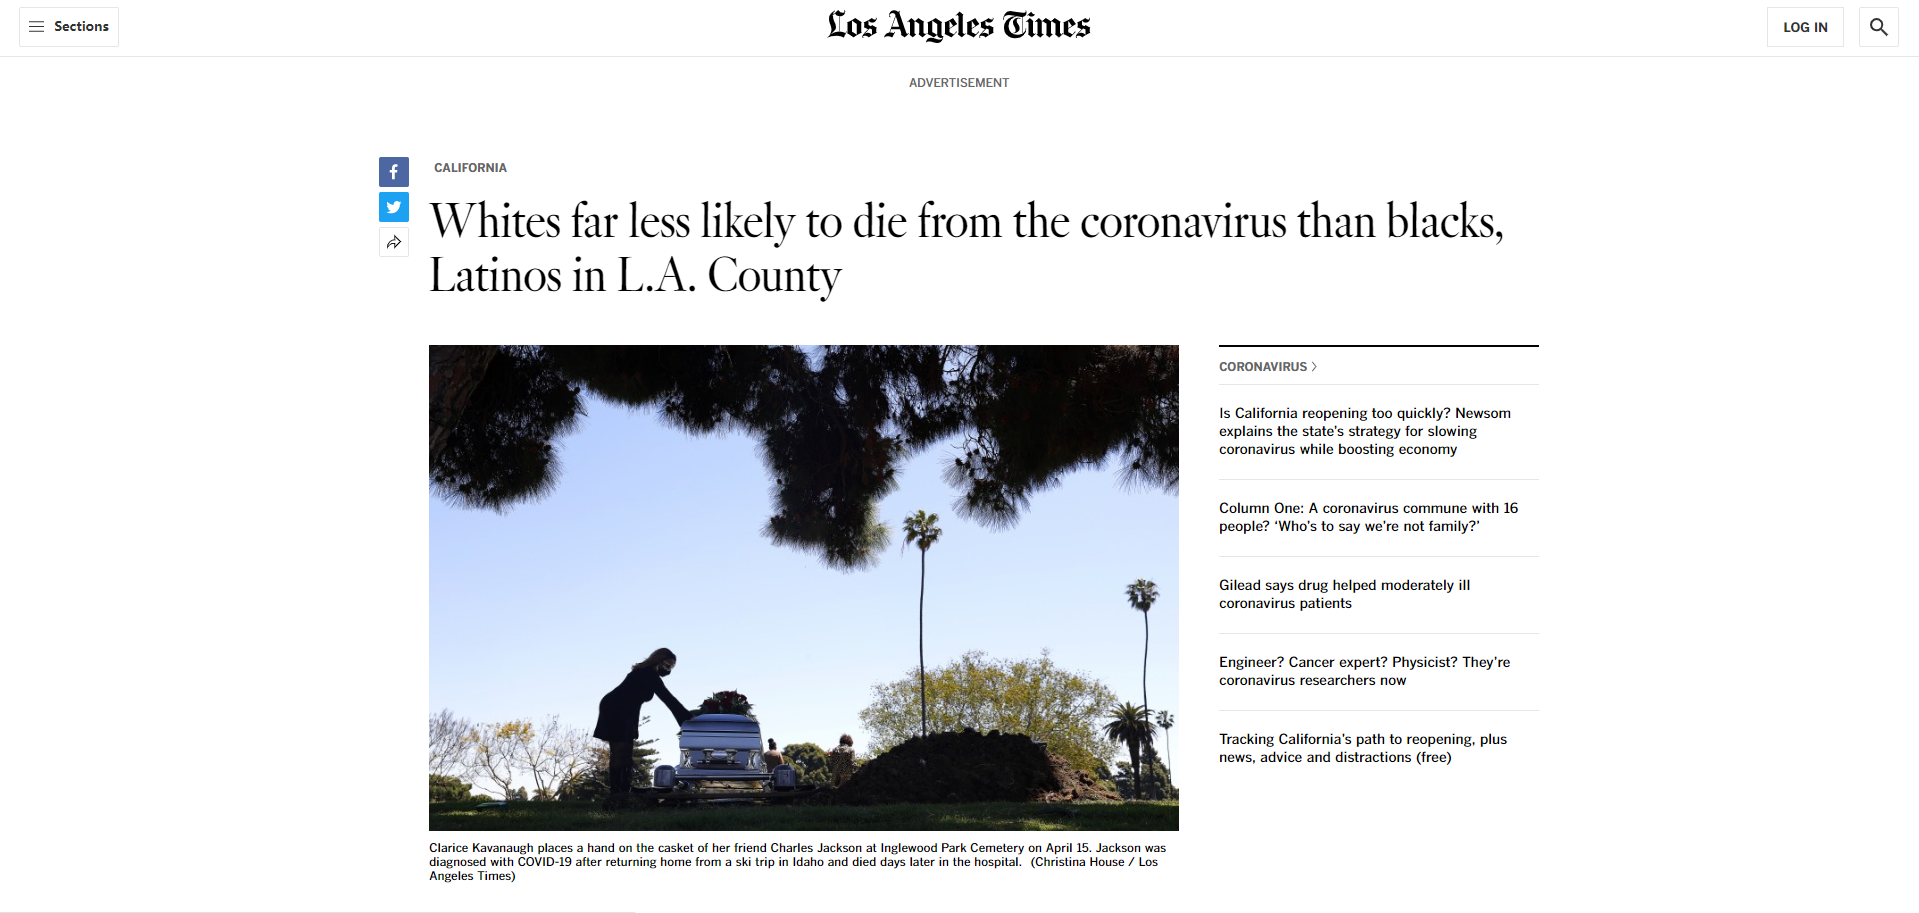 Racial and poverty problems behind coronavirus deaths in L.A. County